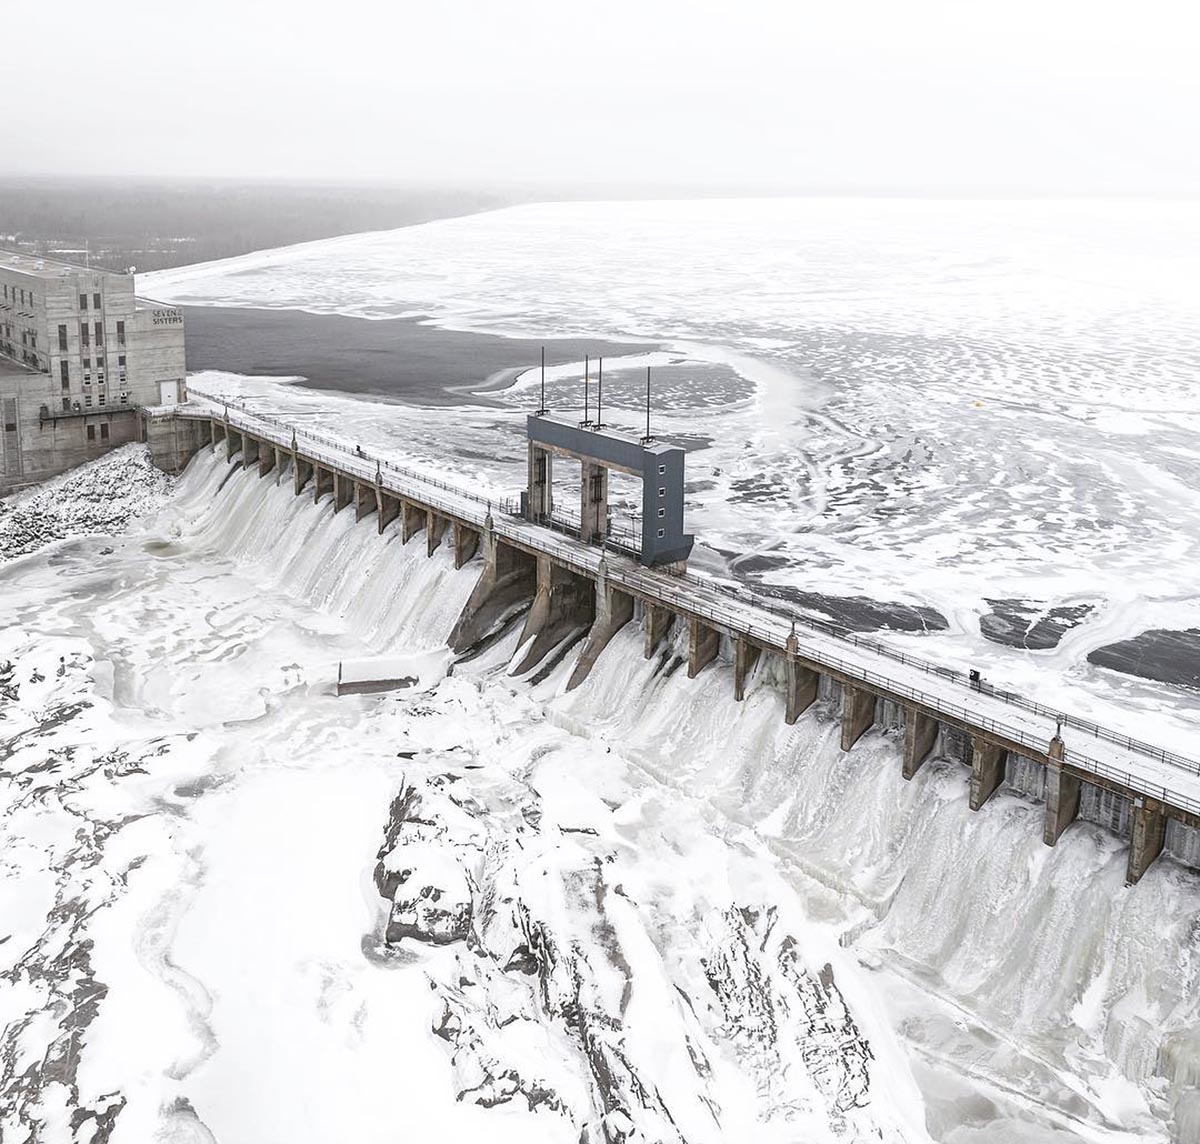 Arial photo of a generating station in winter with snow and ice.